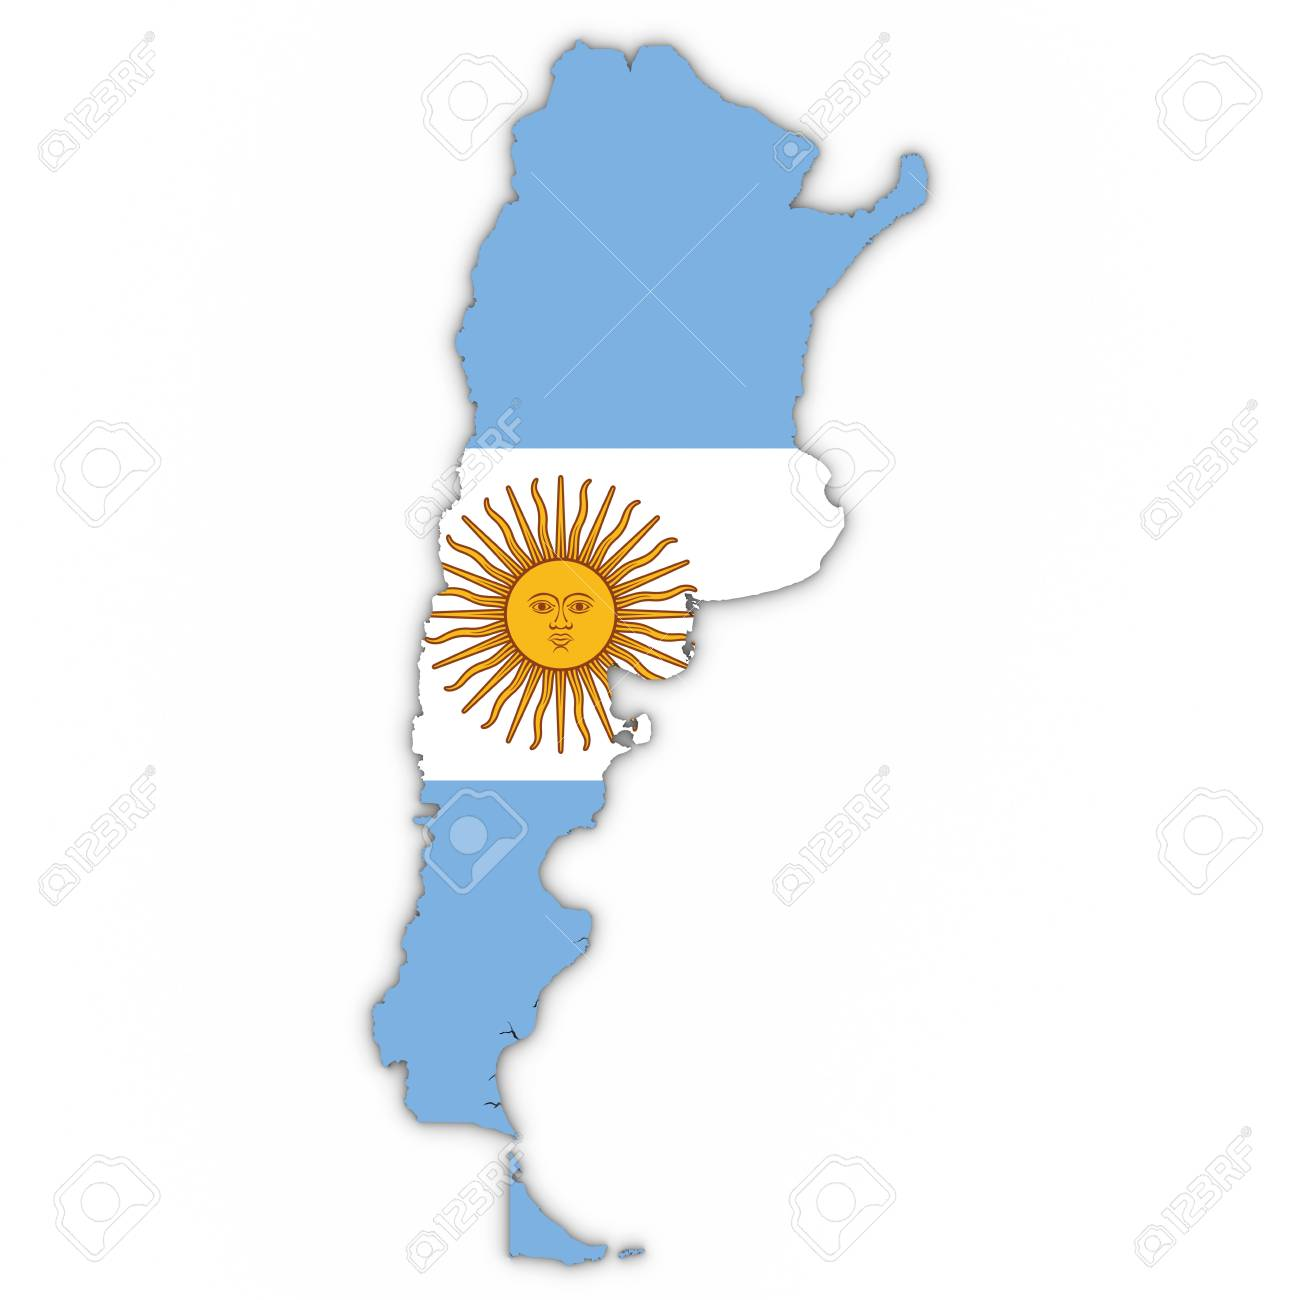 Outline Of Argentina Wiring Diagrams Fetpnpbootstrappedsourcefollower Amplifiercircuit Circuit Map With Argentinian Flag On White Shadows Rh 123rf Com Graphics Country